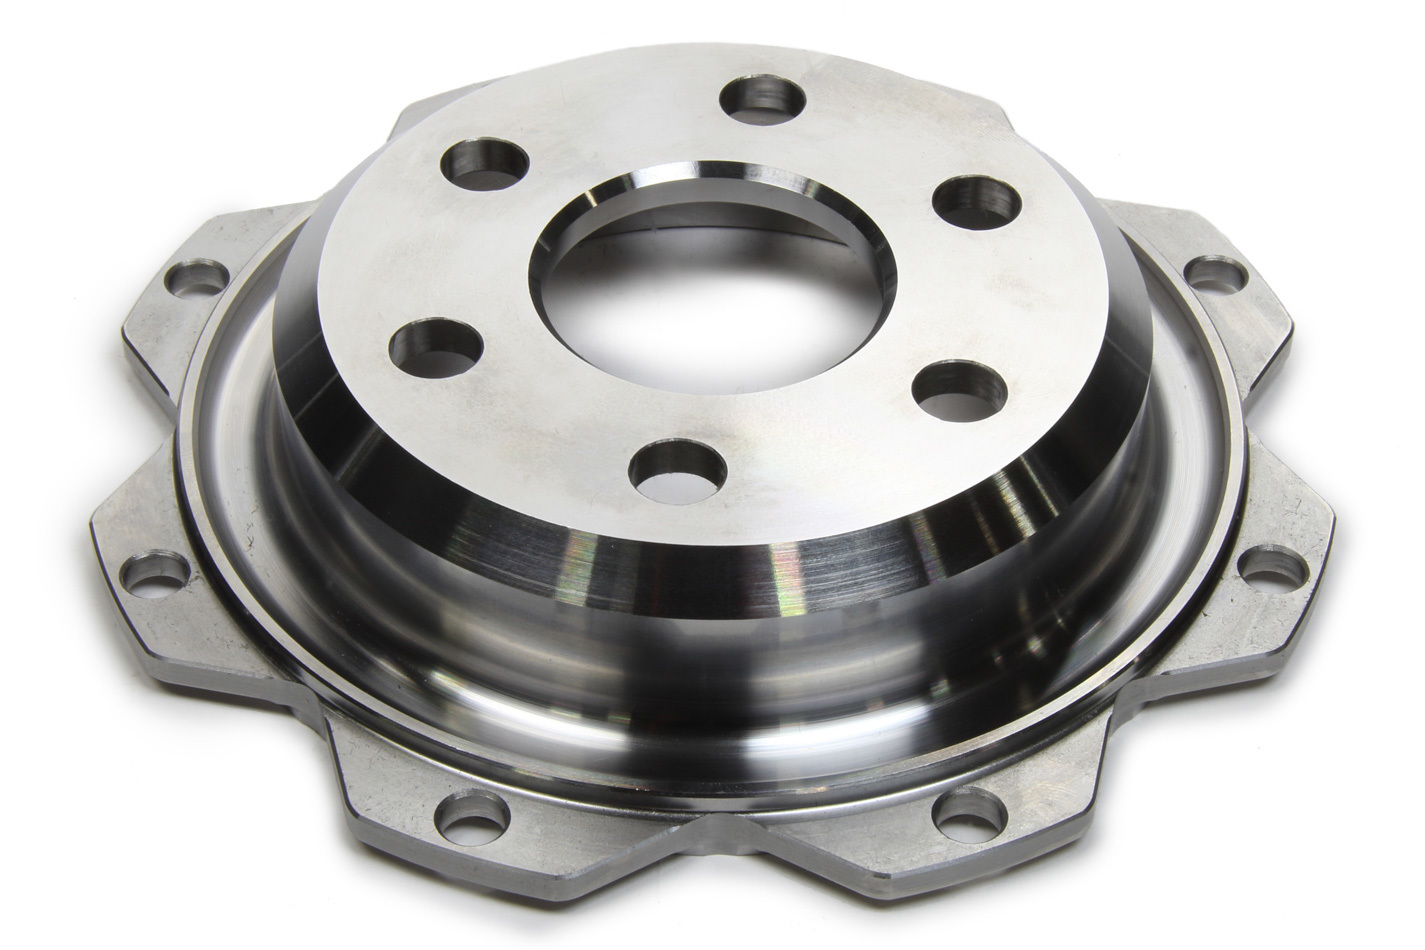 Quarter Master 505308SC Flywheel, Button Style, Neutral Balance, Steel, 5-1/2 in Quarter Master V-Drive / Optimum Clutches, Small Block Ford, Each